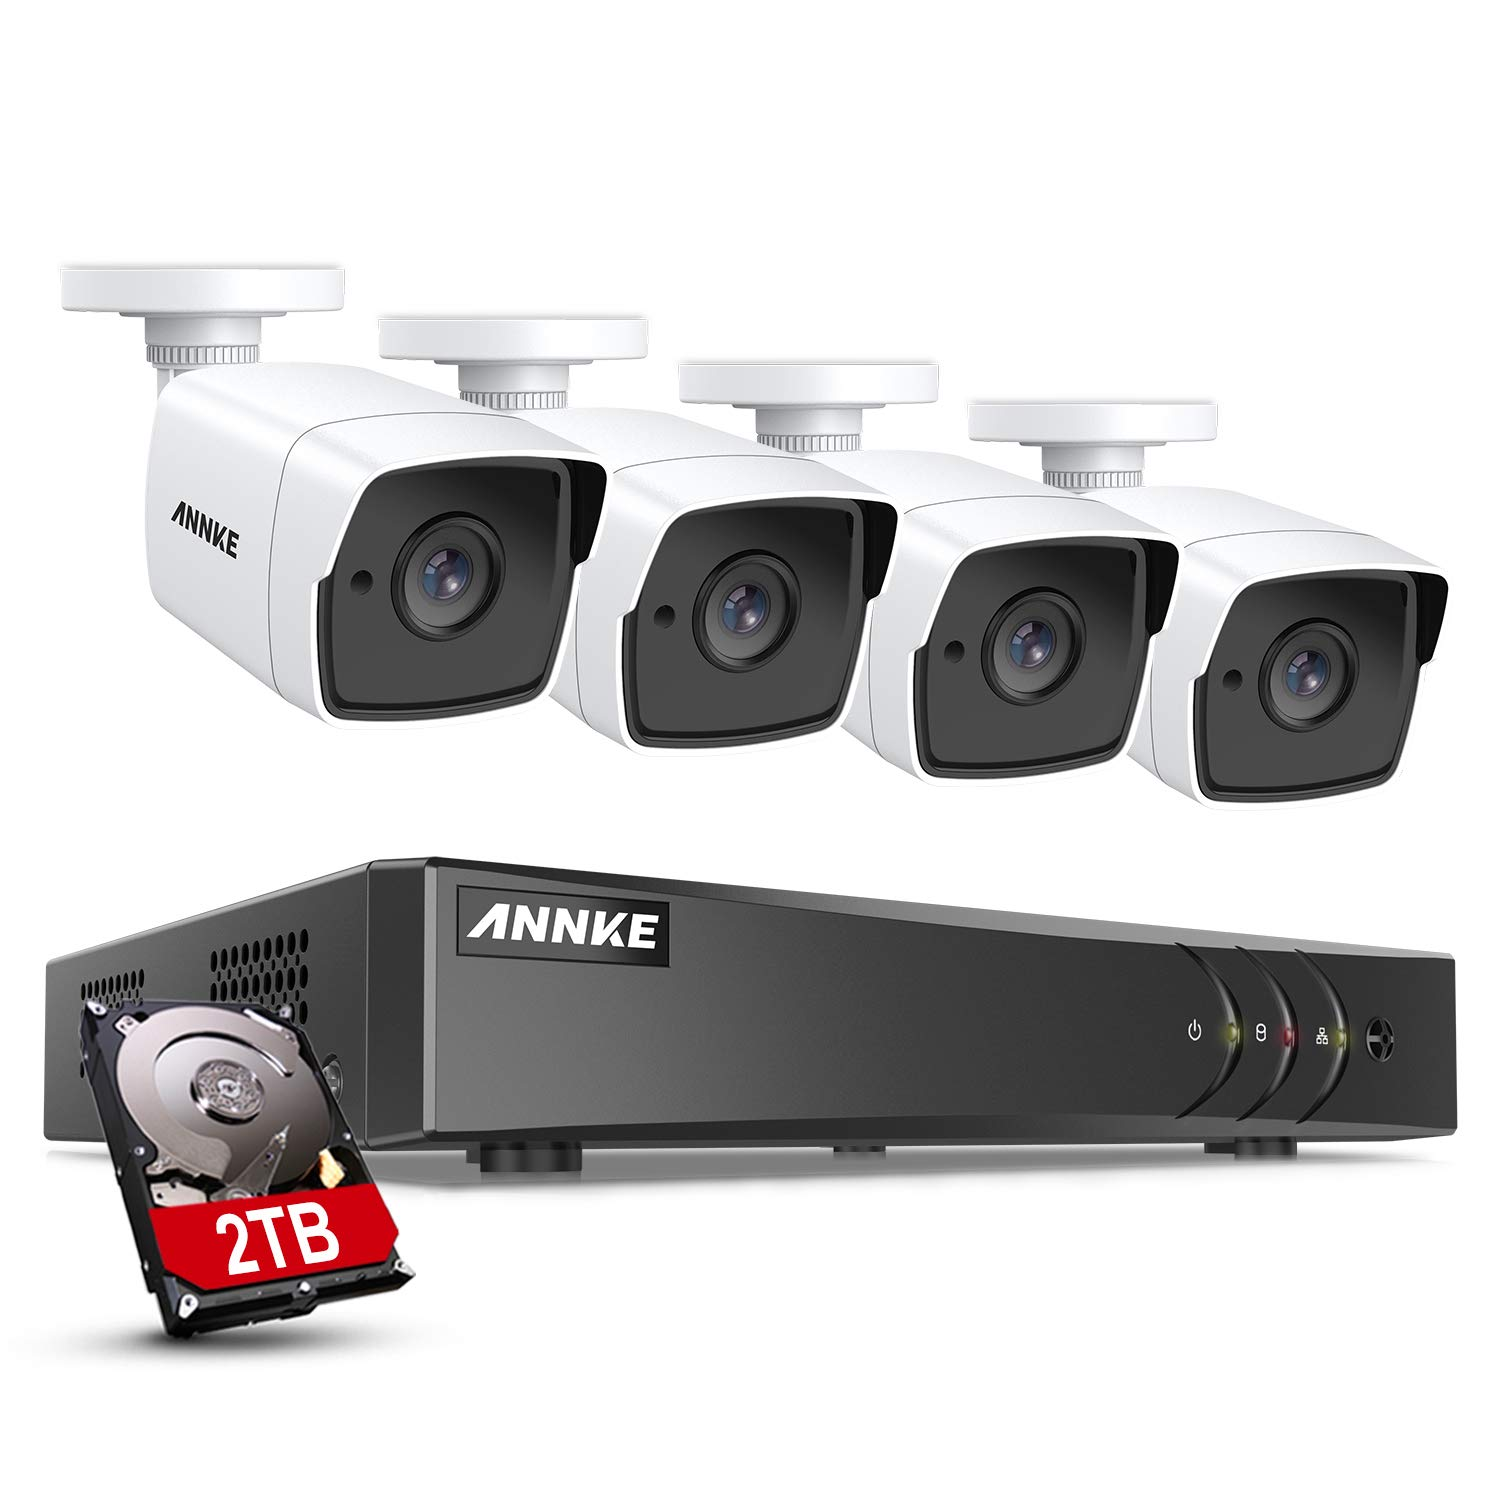 ANNKE 5MP Home Security Camera System 8 Channel H.265+ DVR Recorder with 2TB HDD, 4X 5MP (2560TVL) Wired Indoor Outdoor CCTV Cameras, 100 ft EXIR Night Vision, Motion Detection & Remote Monitoring